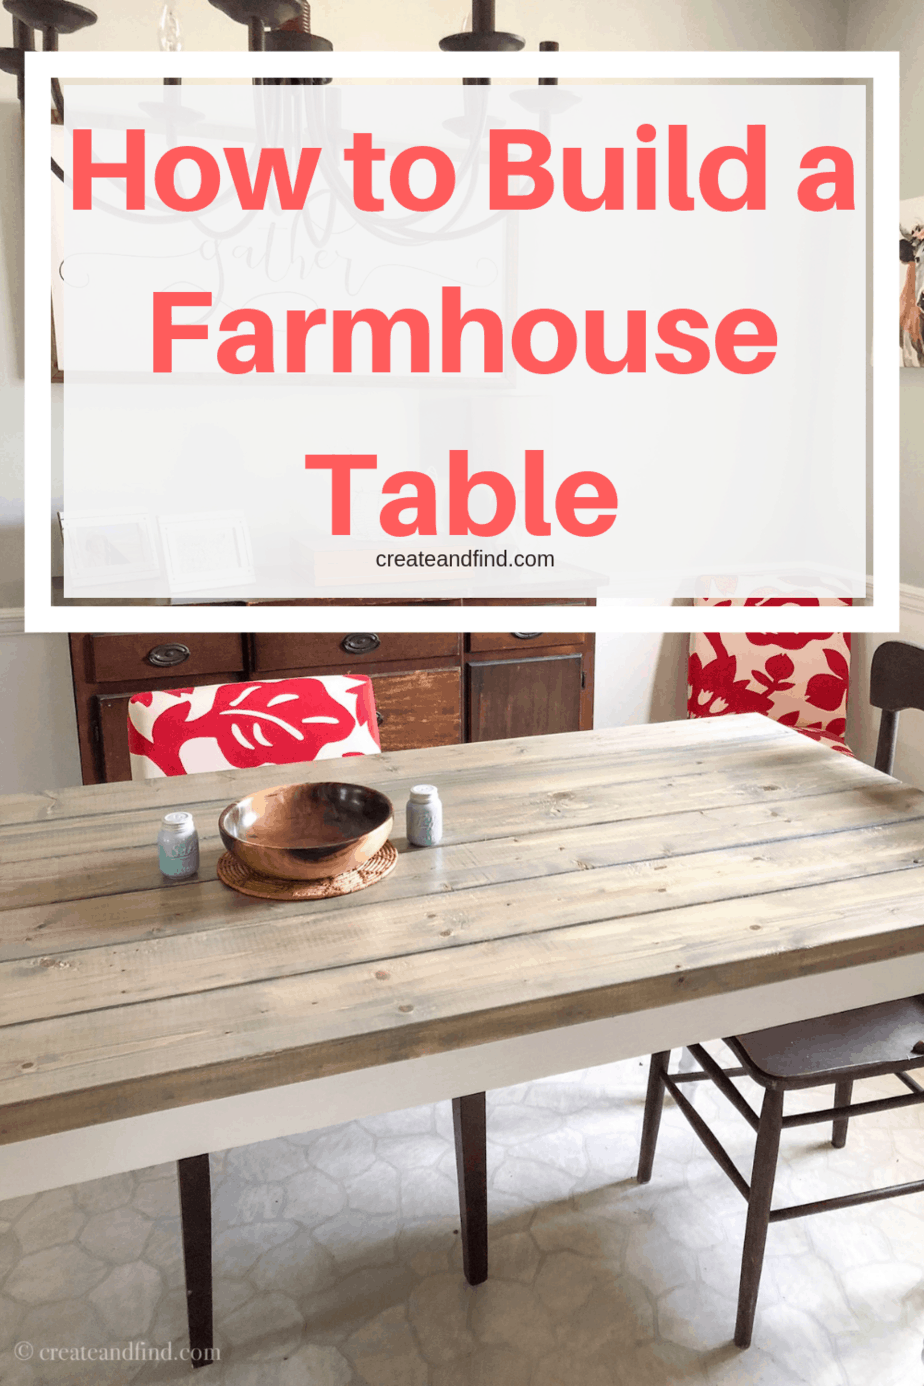 How to build your own farmhouse dining table - I'll show you how to DIY your own farmhouse style dining table for less than $150 #createandfind #diyfarmhousetable #diytable #diyprojects